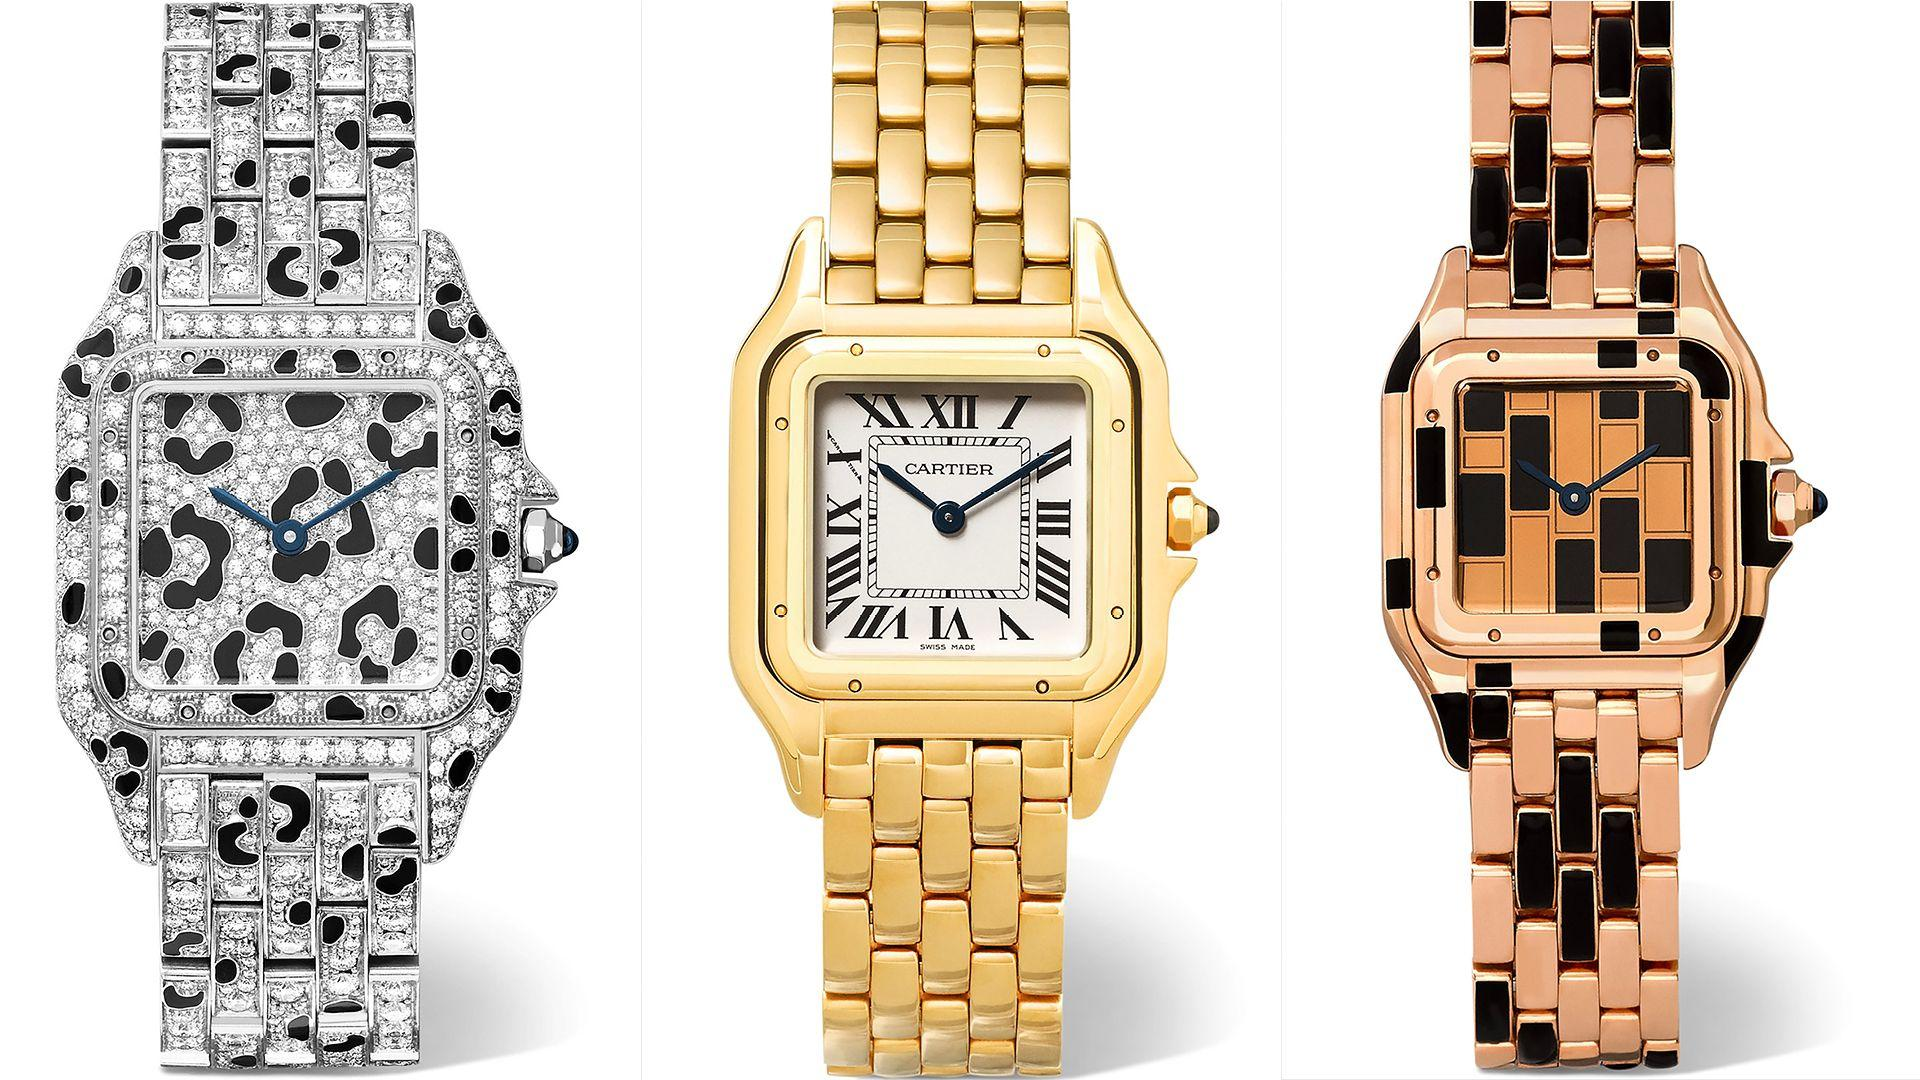 The Cartier Panthère collection